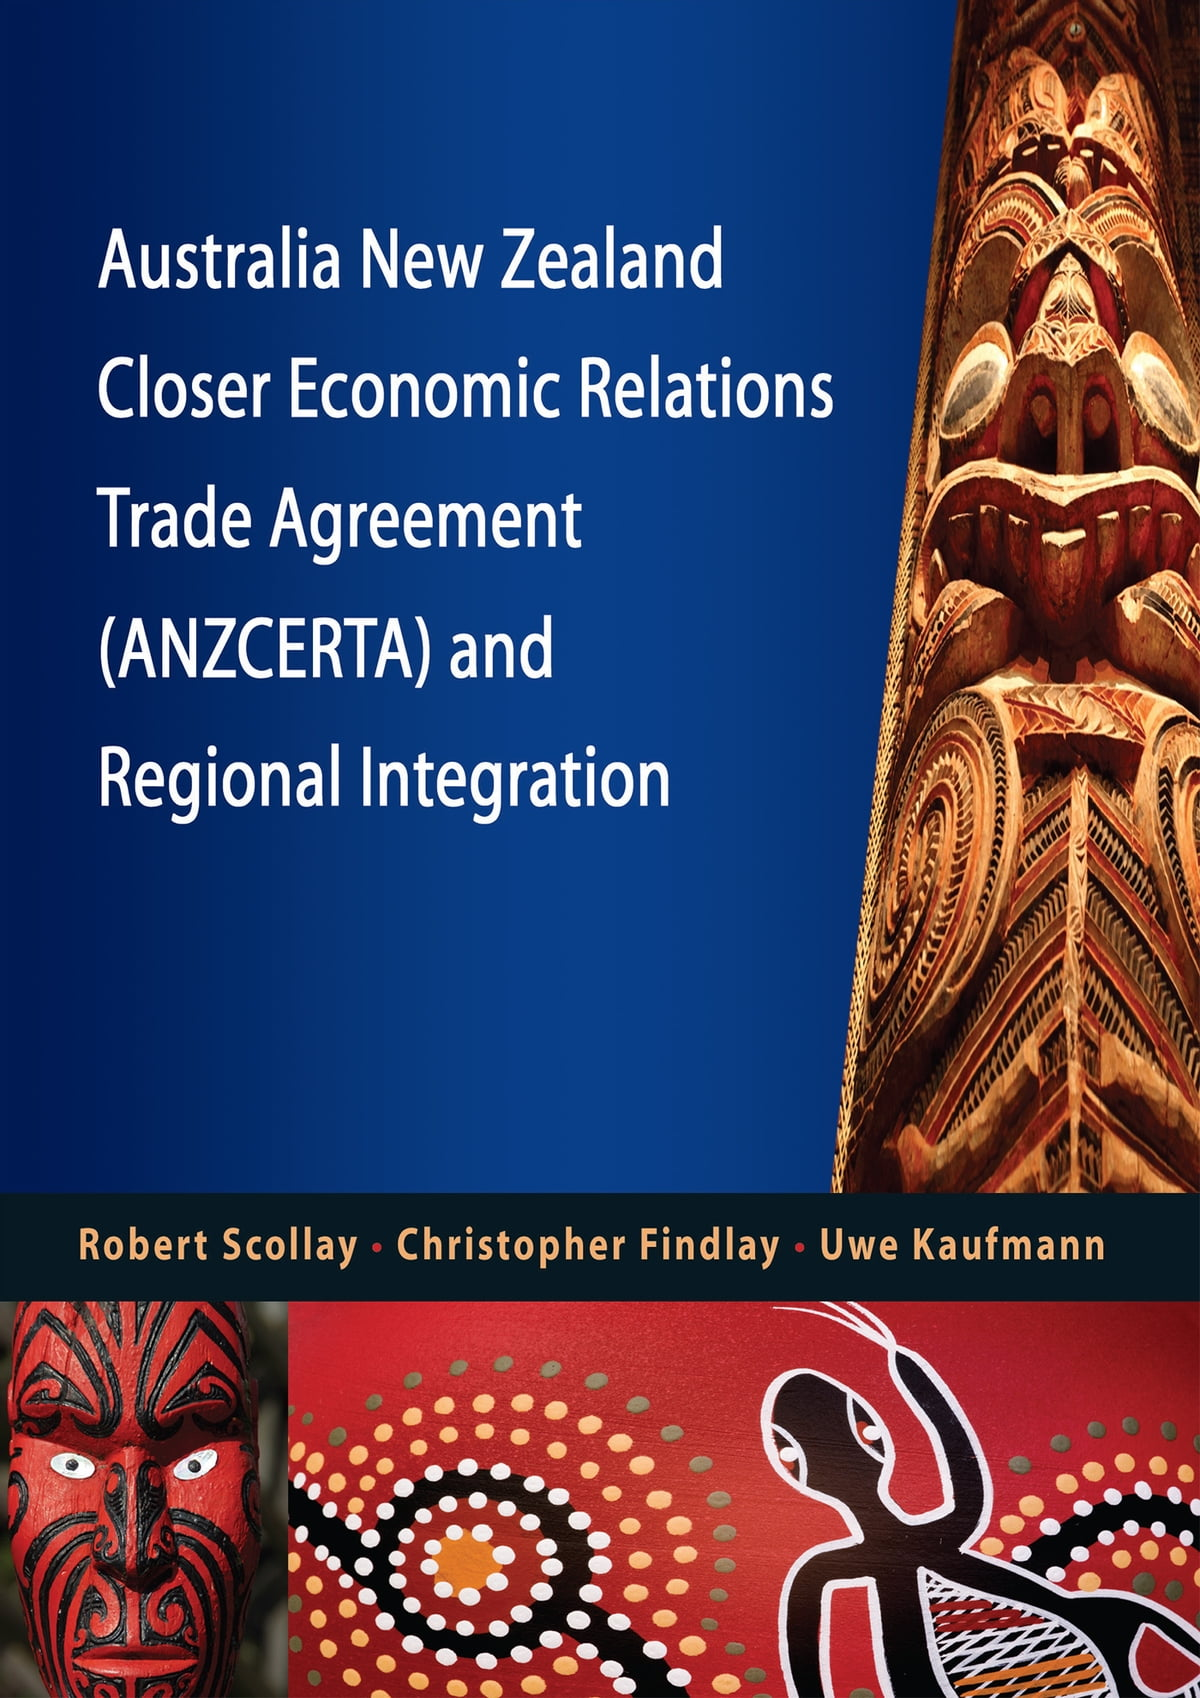 Australia New Zealand Closer Economic Relations Trade Agreement